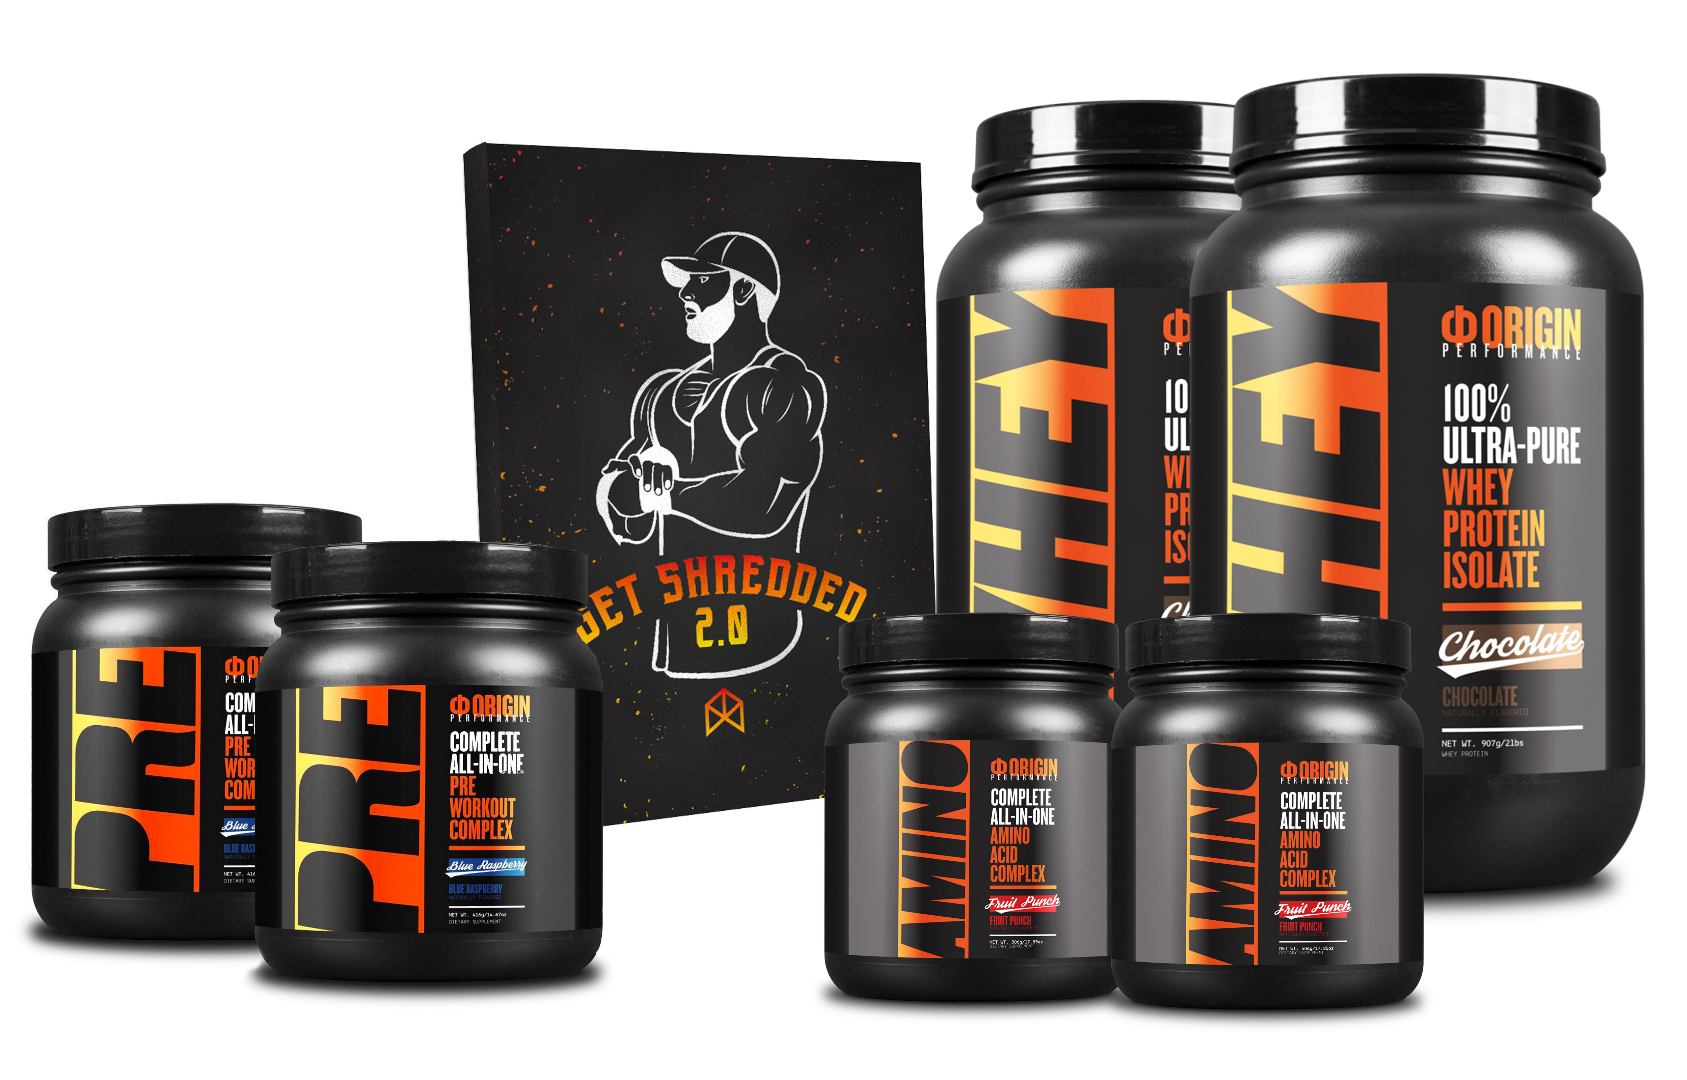 Origin Supps - Get Shredded Stack